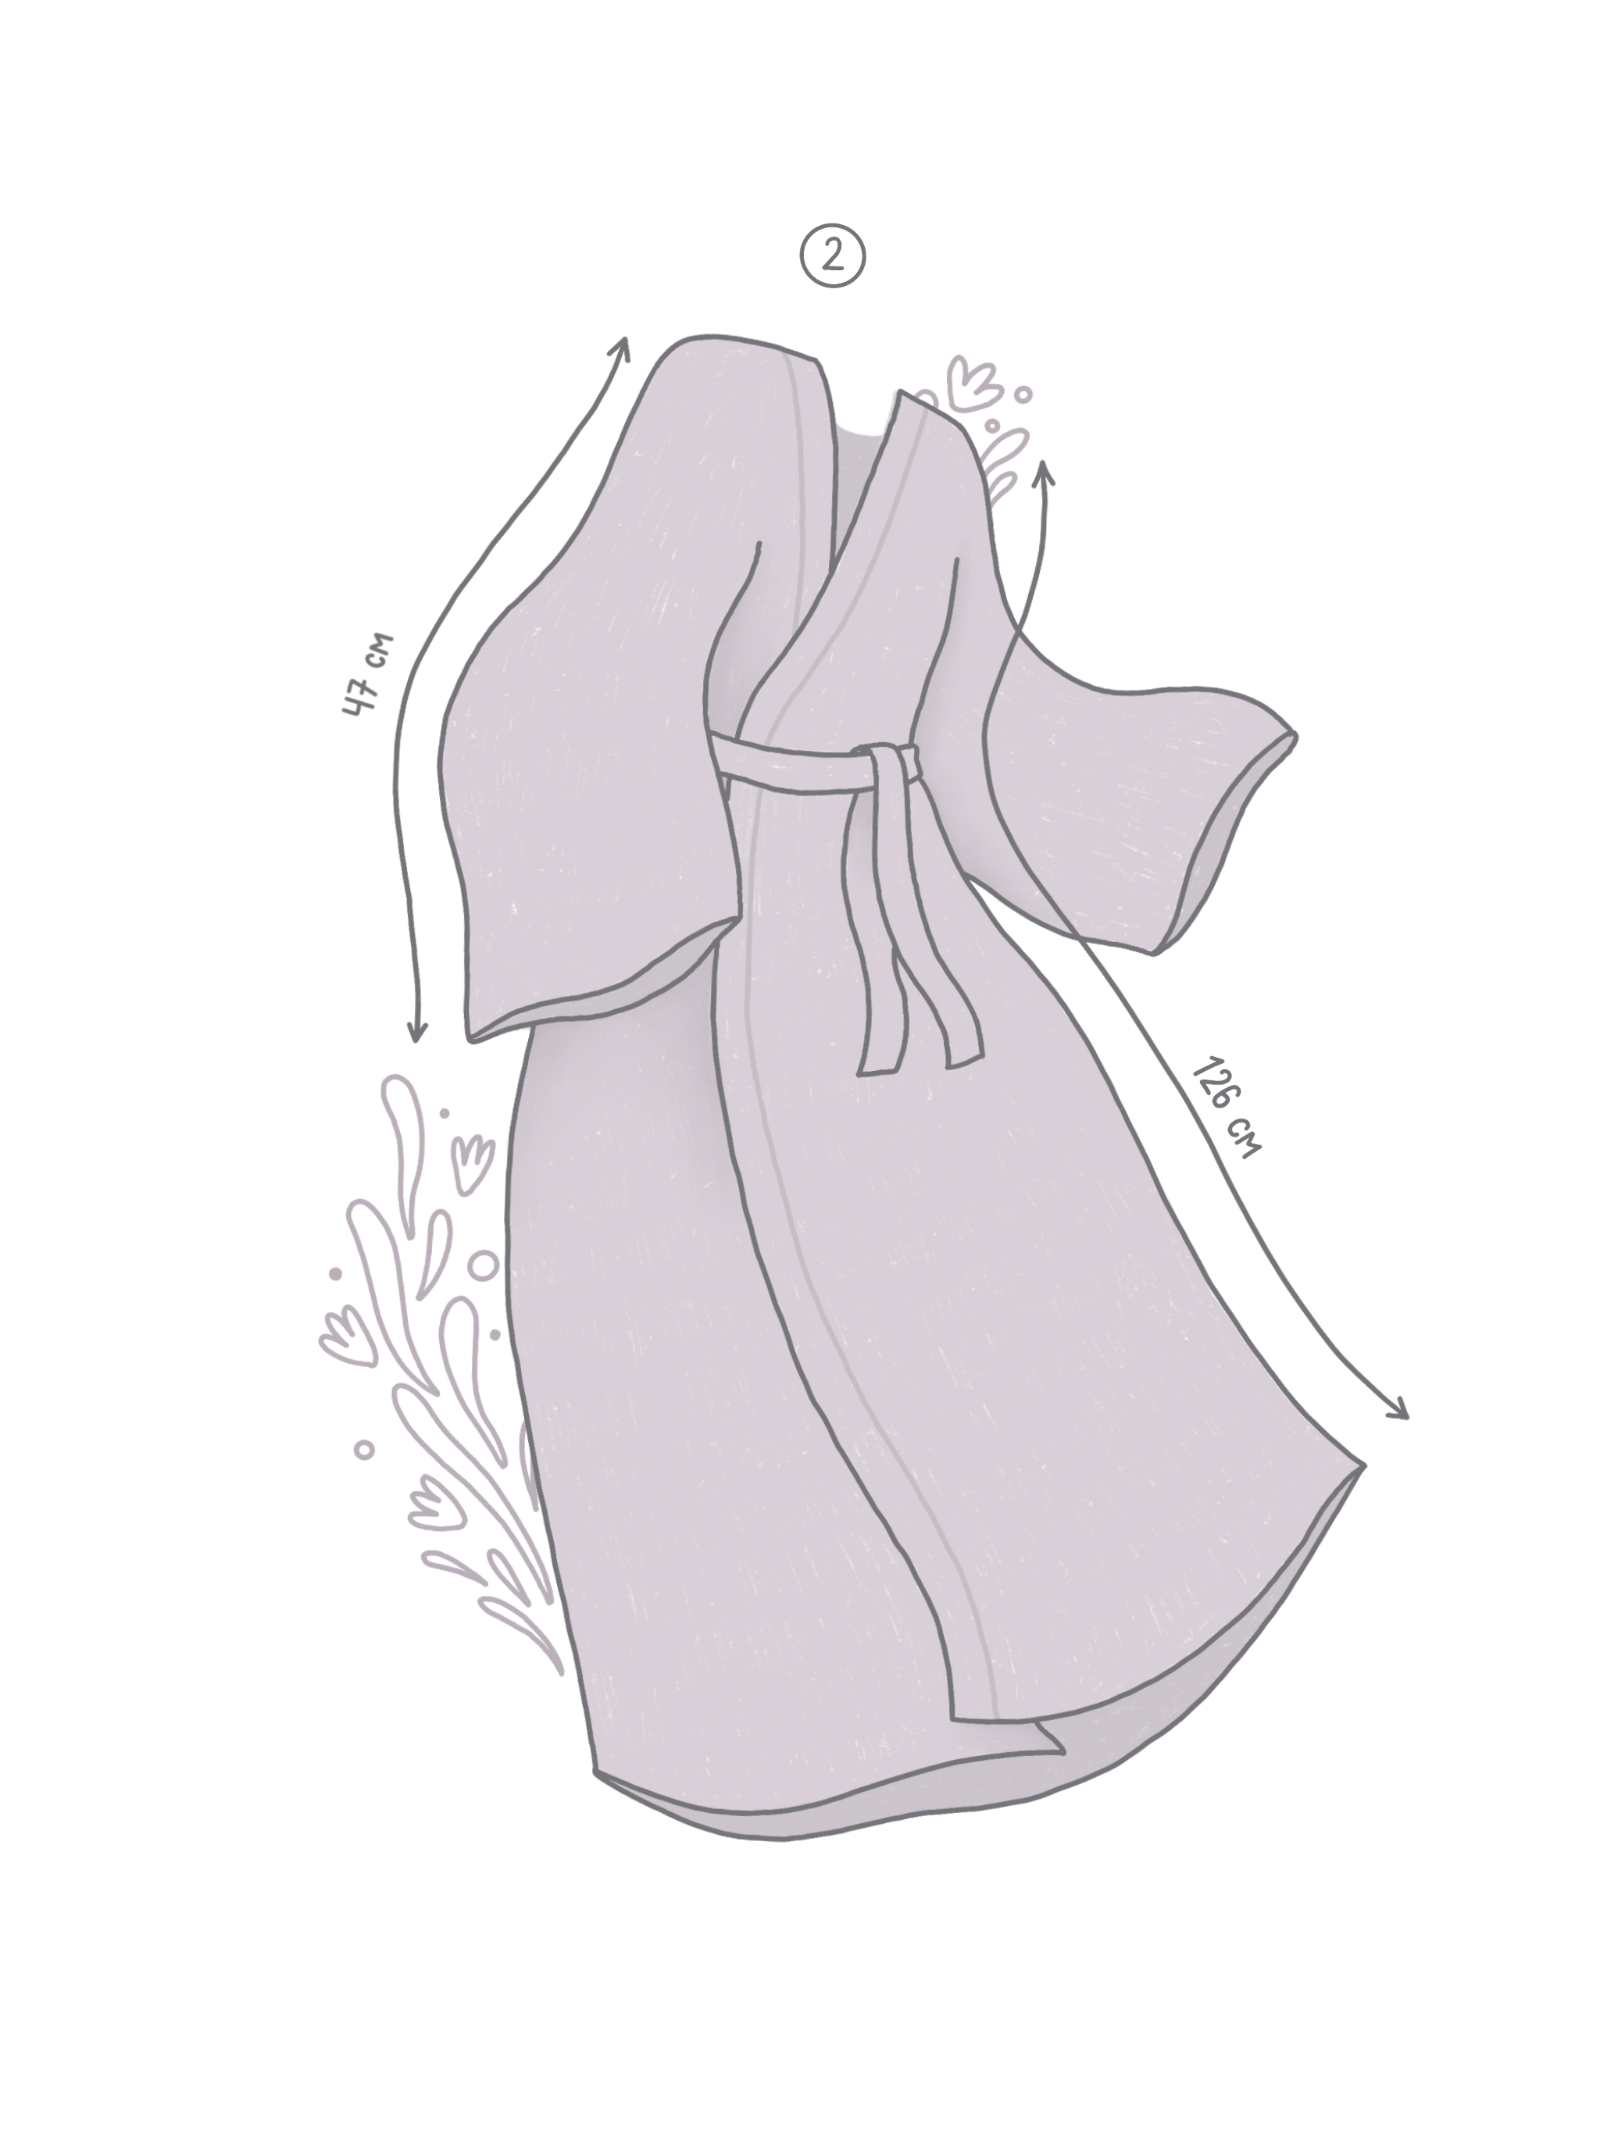 PageProductDetails:products.robe.title